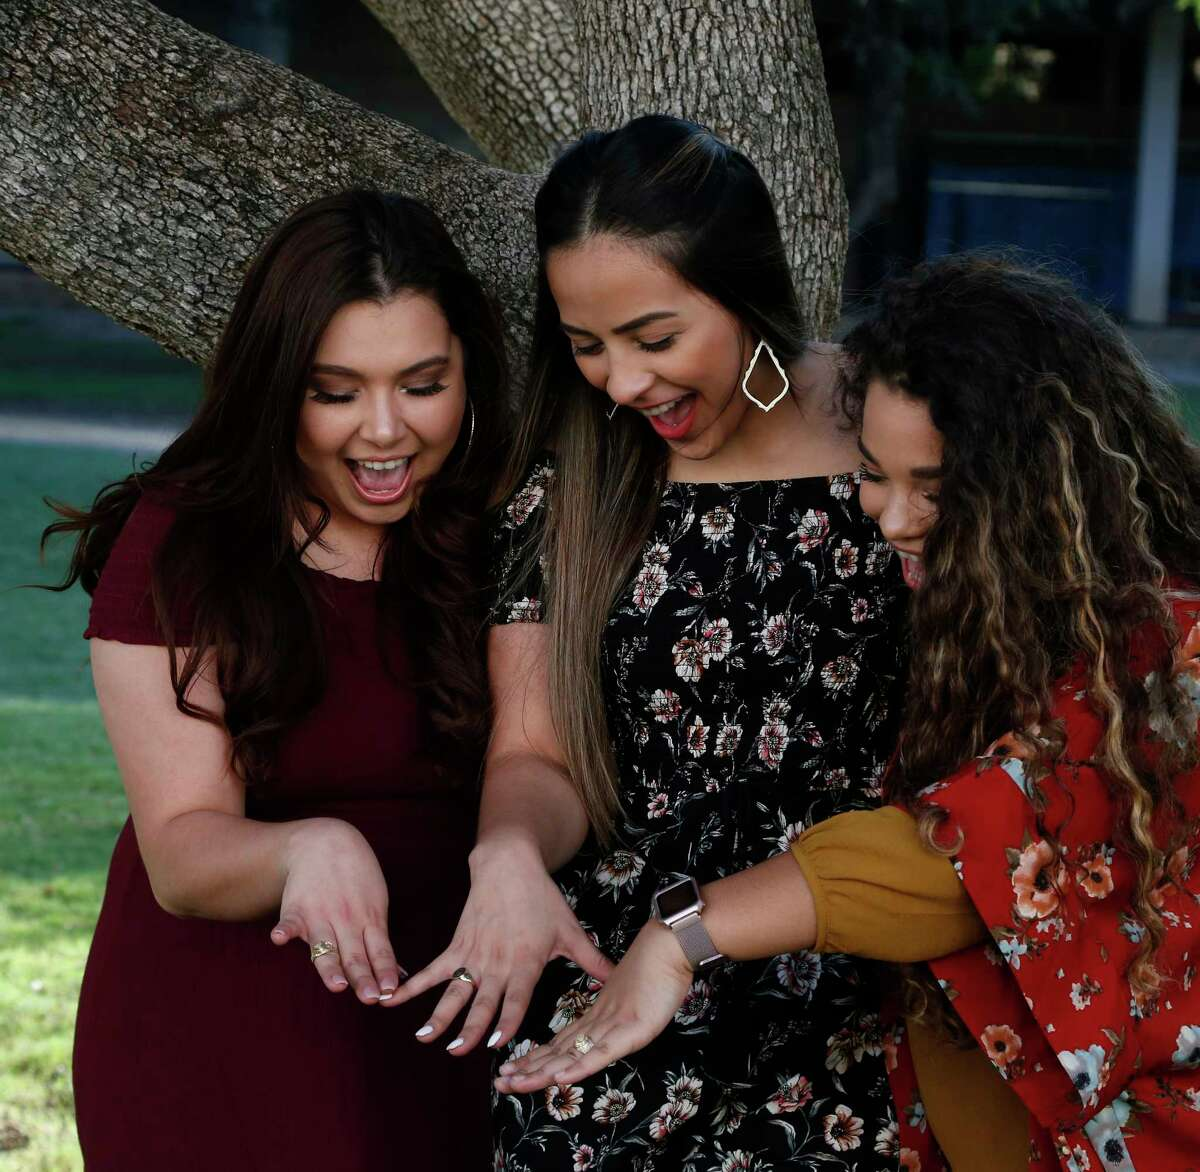 Jessica Brady, Alexis Gonzalez, and Dara Salazar admire their rings after the ceremony. Graduates are receiving their class rings this evening. This tradition is just six years old. UTSA Ring Ceremony Wednesday, May 9,2018 at H-E-B Student Union Ballroom,UTSA.